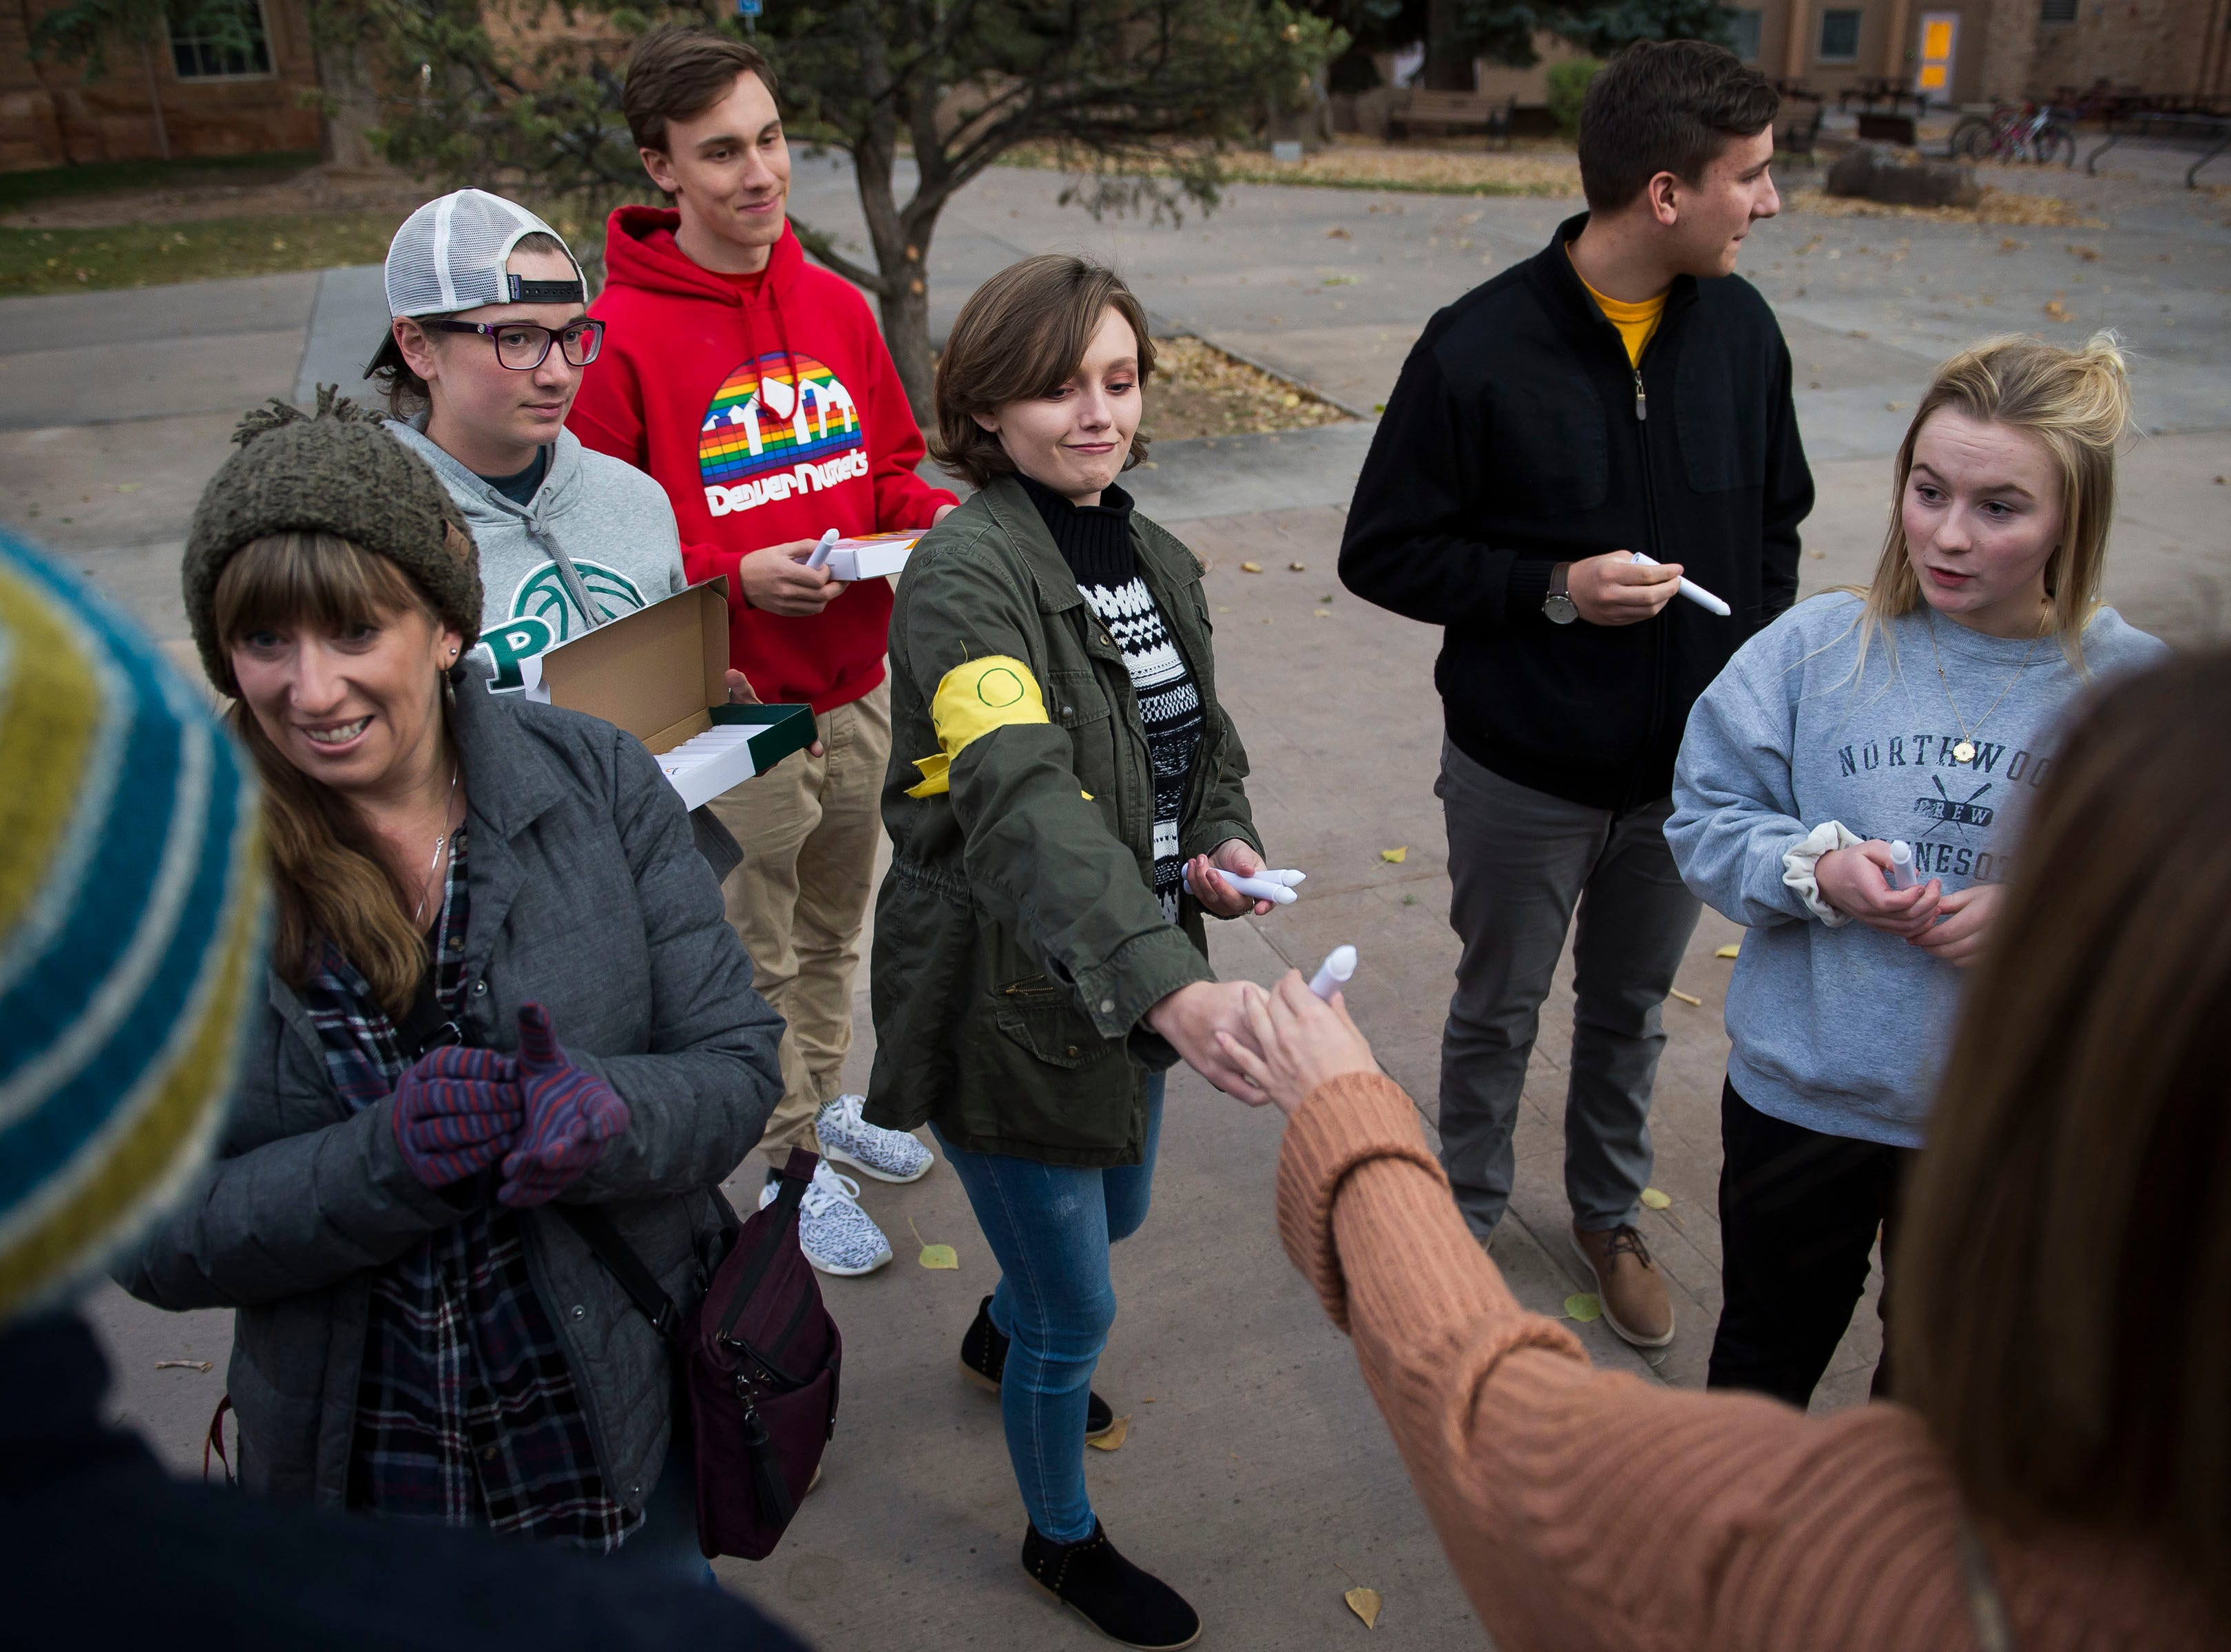 University of Wyoming religious studies junior Danielle DiJohn hands a flameless candle to Laramie resident Aimee Van Cleave before a candlelight vigil on the 20th anniversary of Matthew Shepard's death on Friday, Oct. 12, 2018, at Prexy's Pasture on the University of Wyoming campus in Laramie, Wyo.